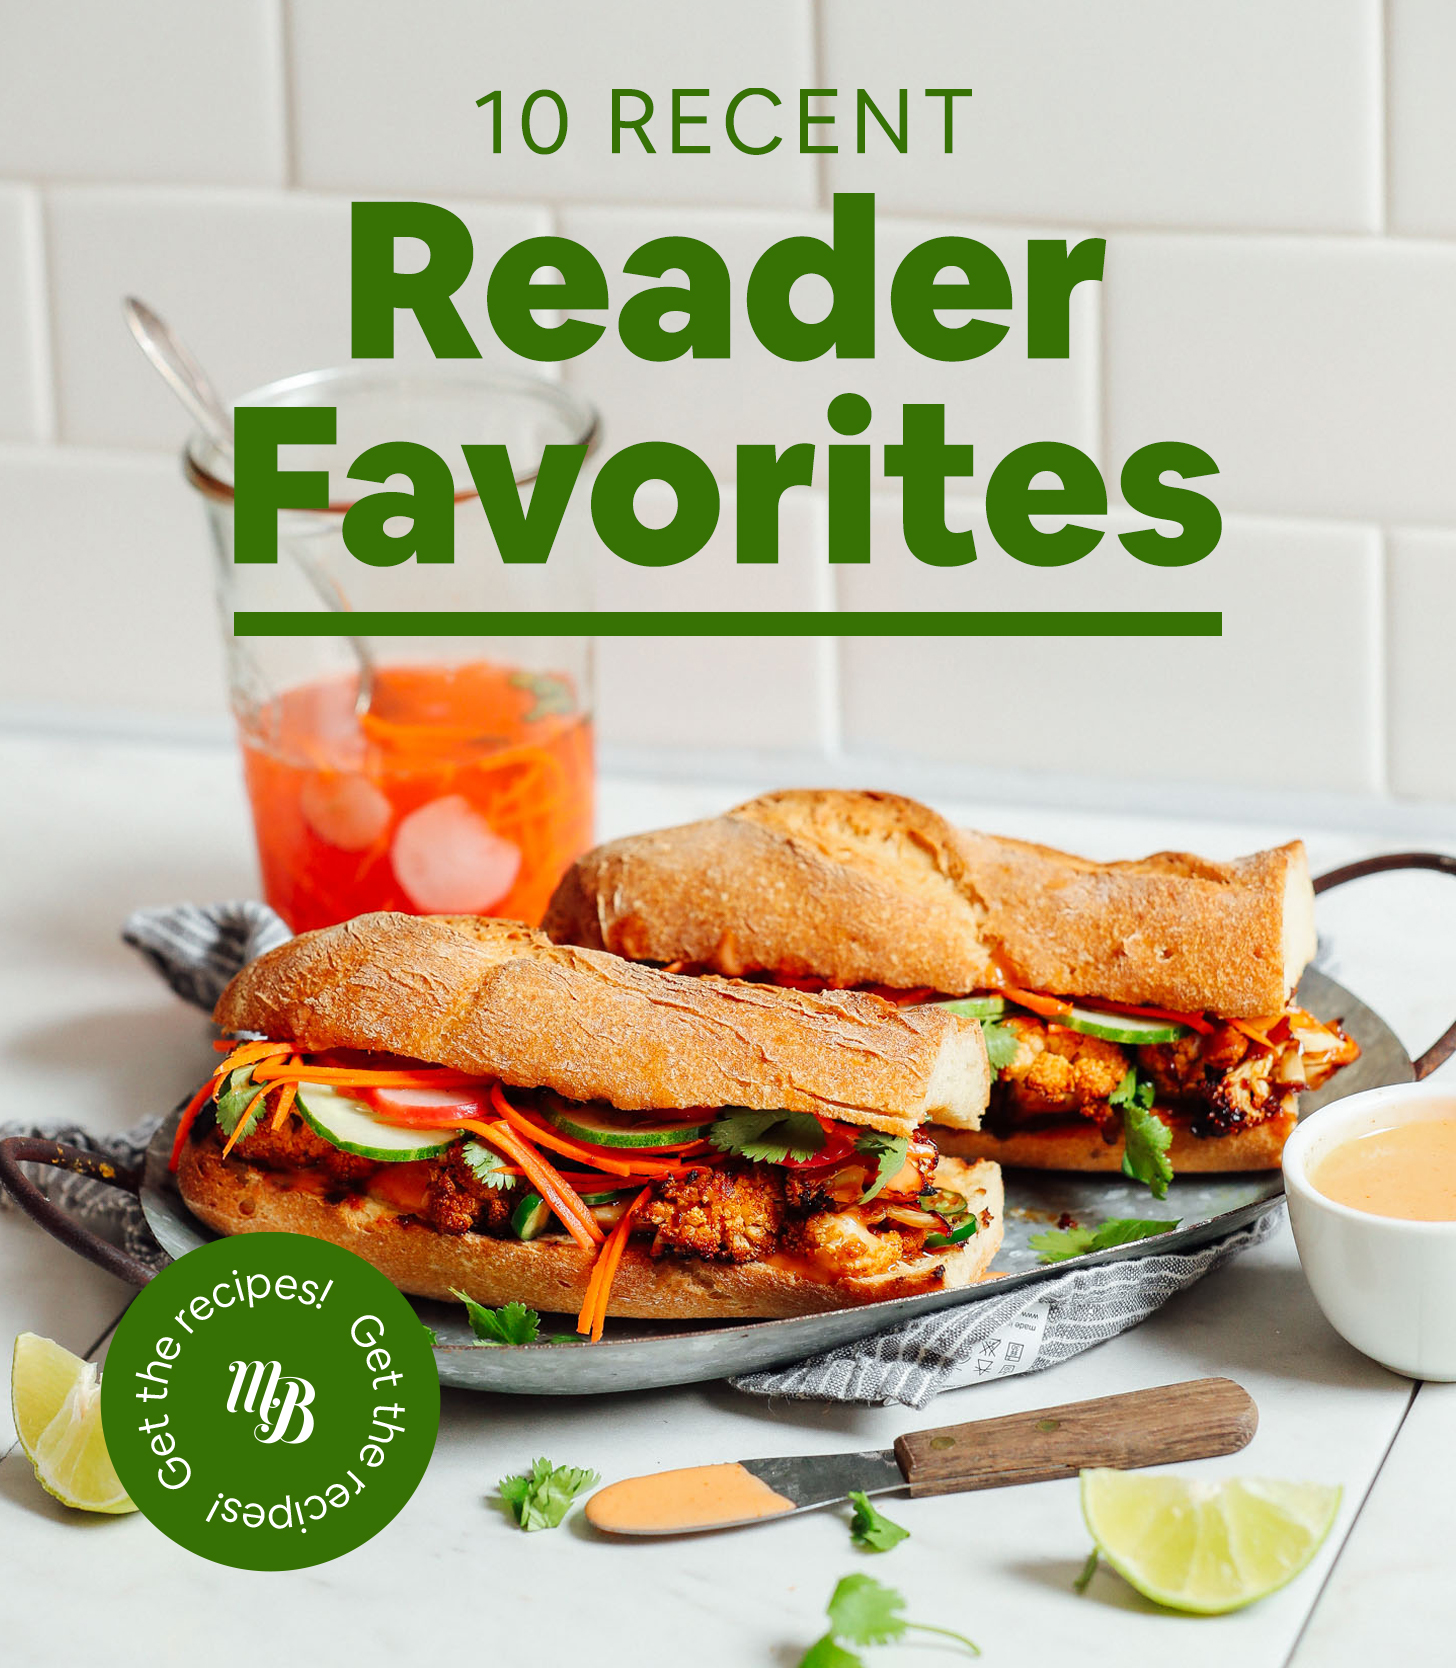 Cauliflower Banh Mi Sandwiches with text overlaid saying 10 Recent Reader Favorites